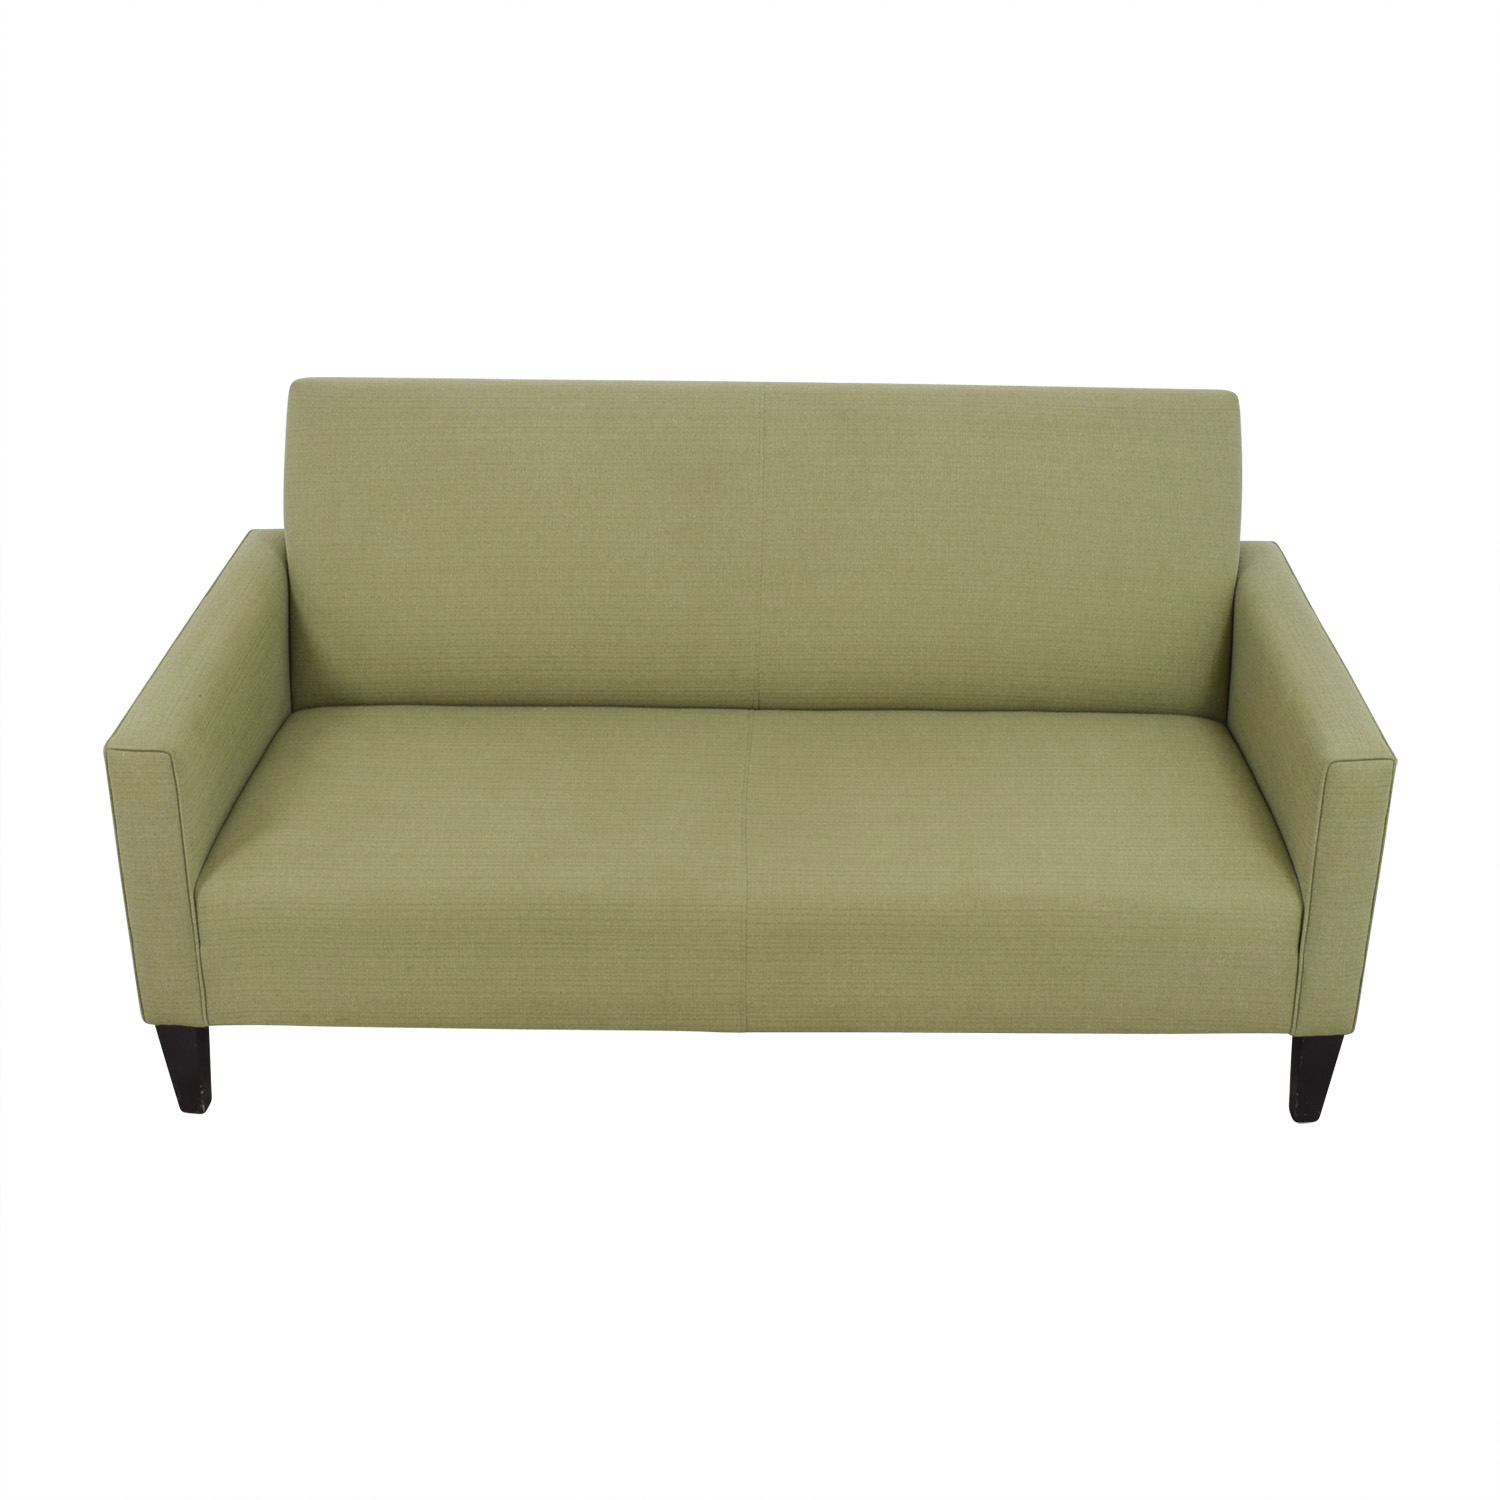 Crate & Barrel Crate & Barrel Moss Green Single Cushion Couch discount